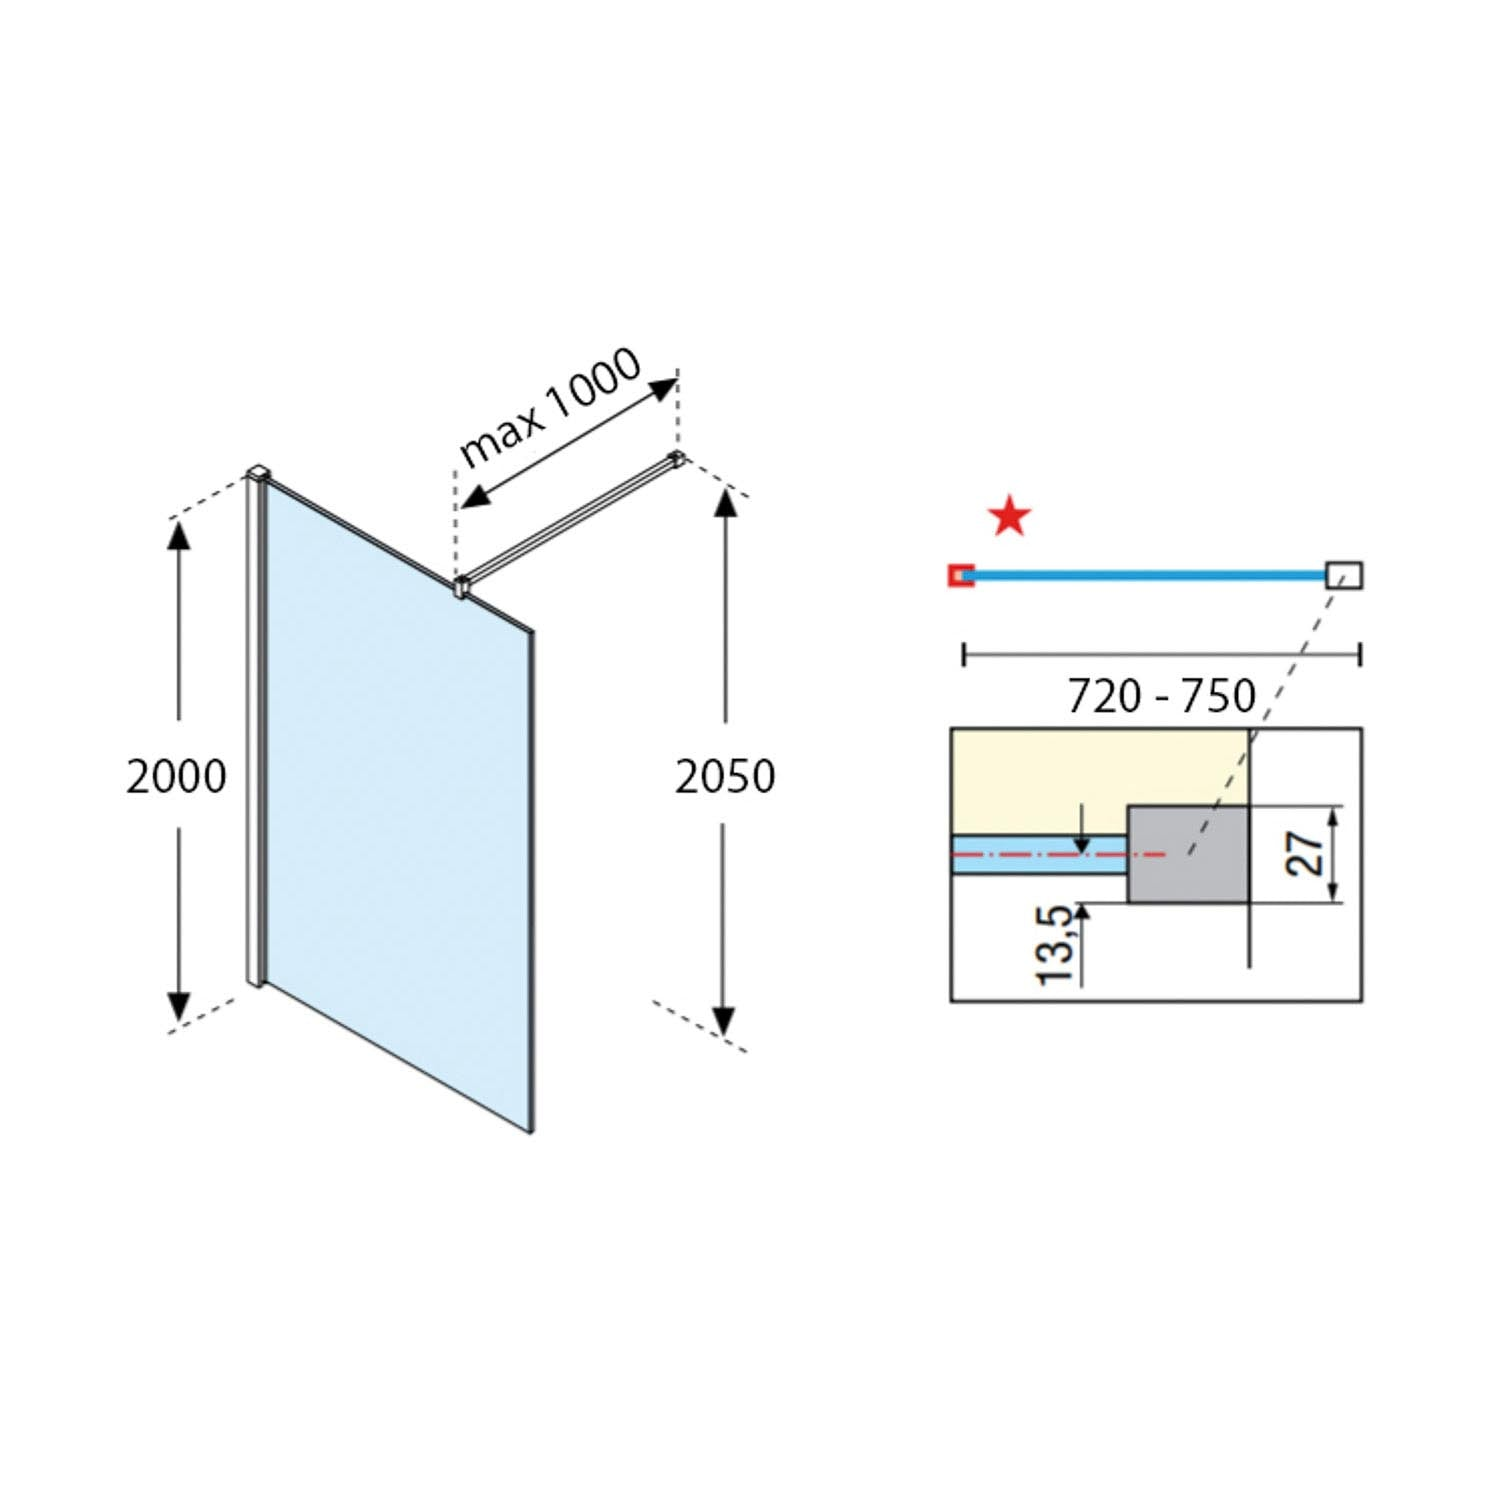 720-750mm Ergo Wet Room Screen Clear Glass with a matt black finish dimensional drawing